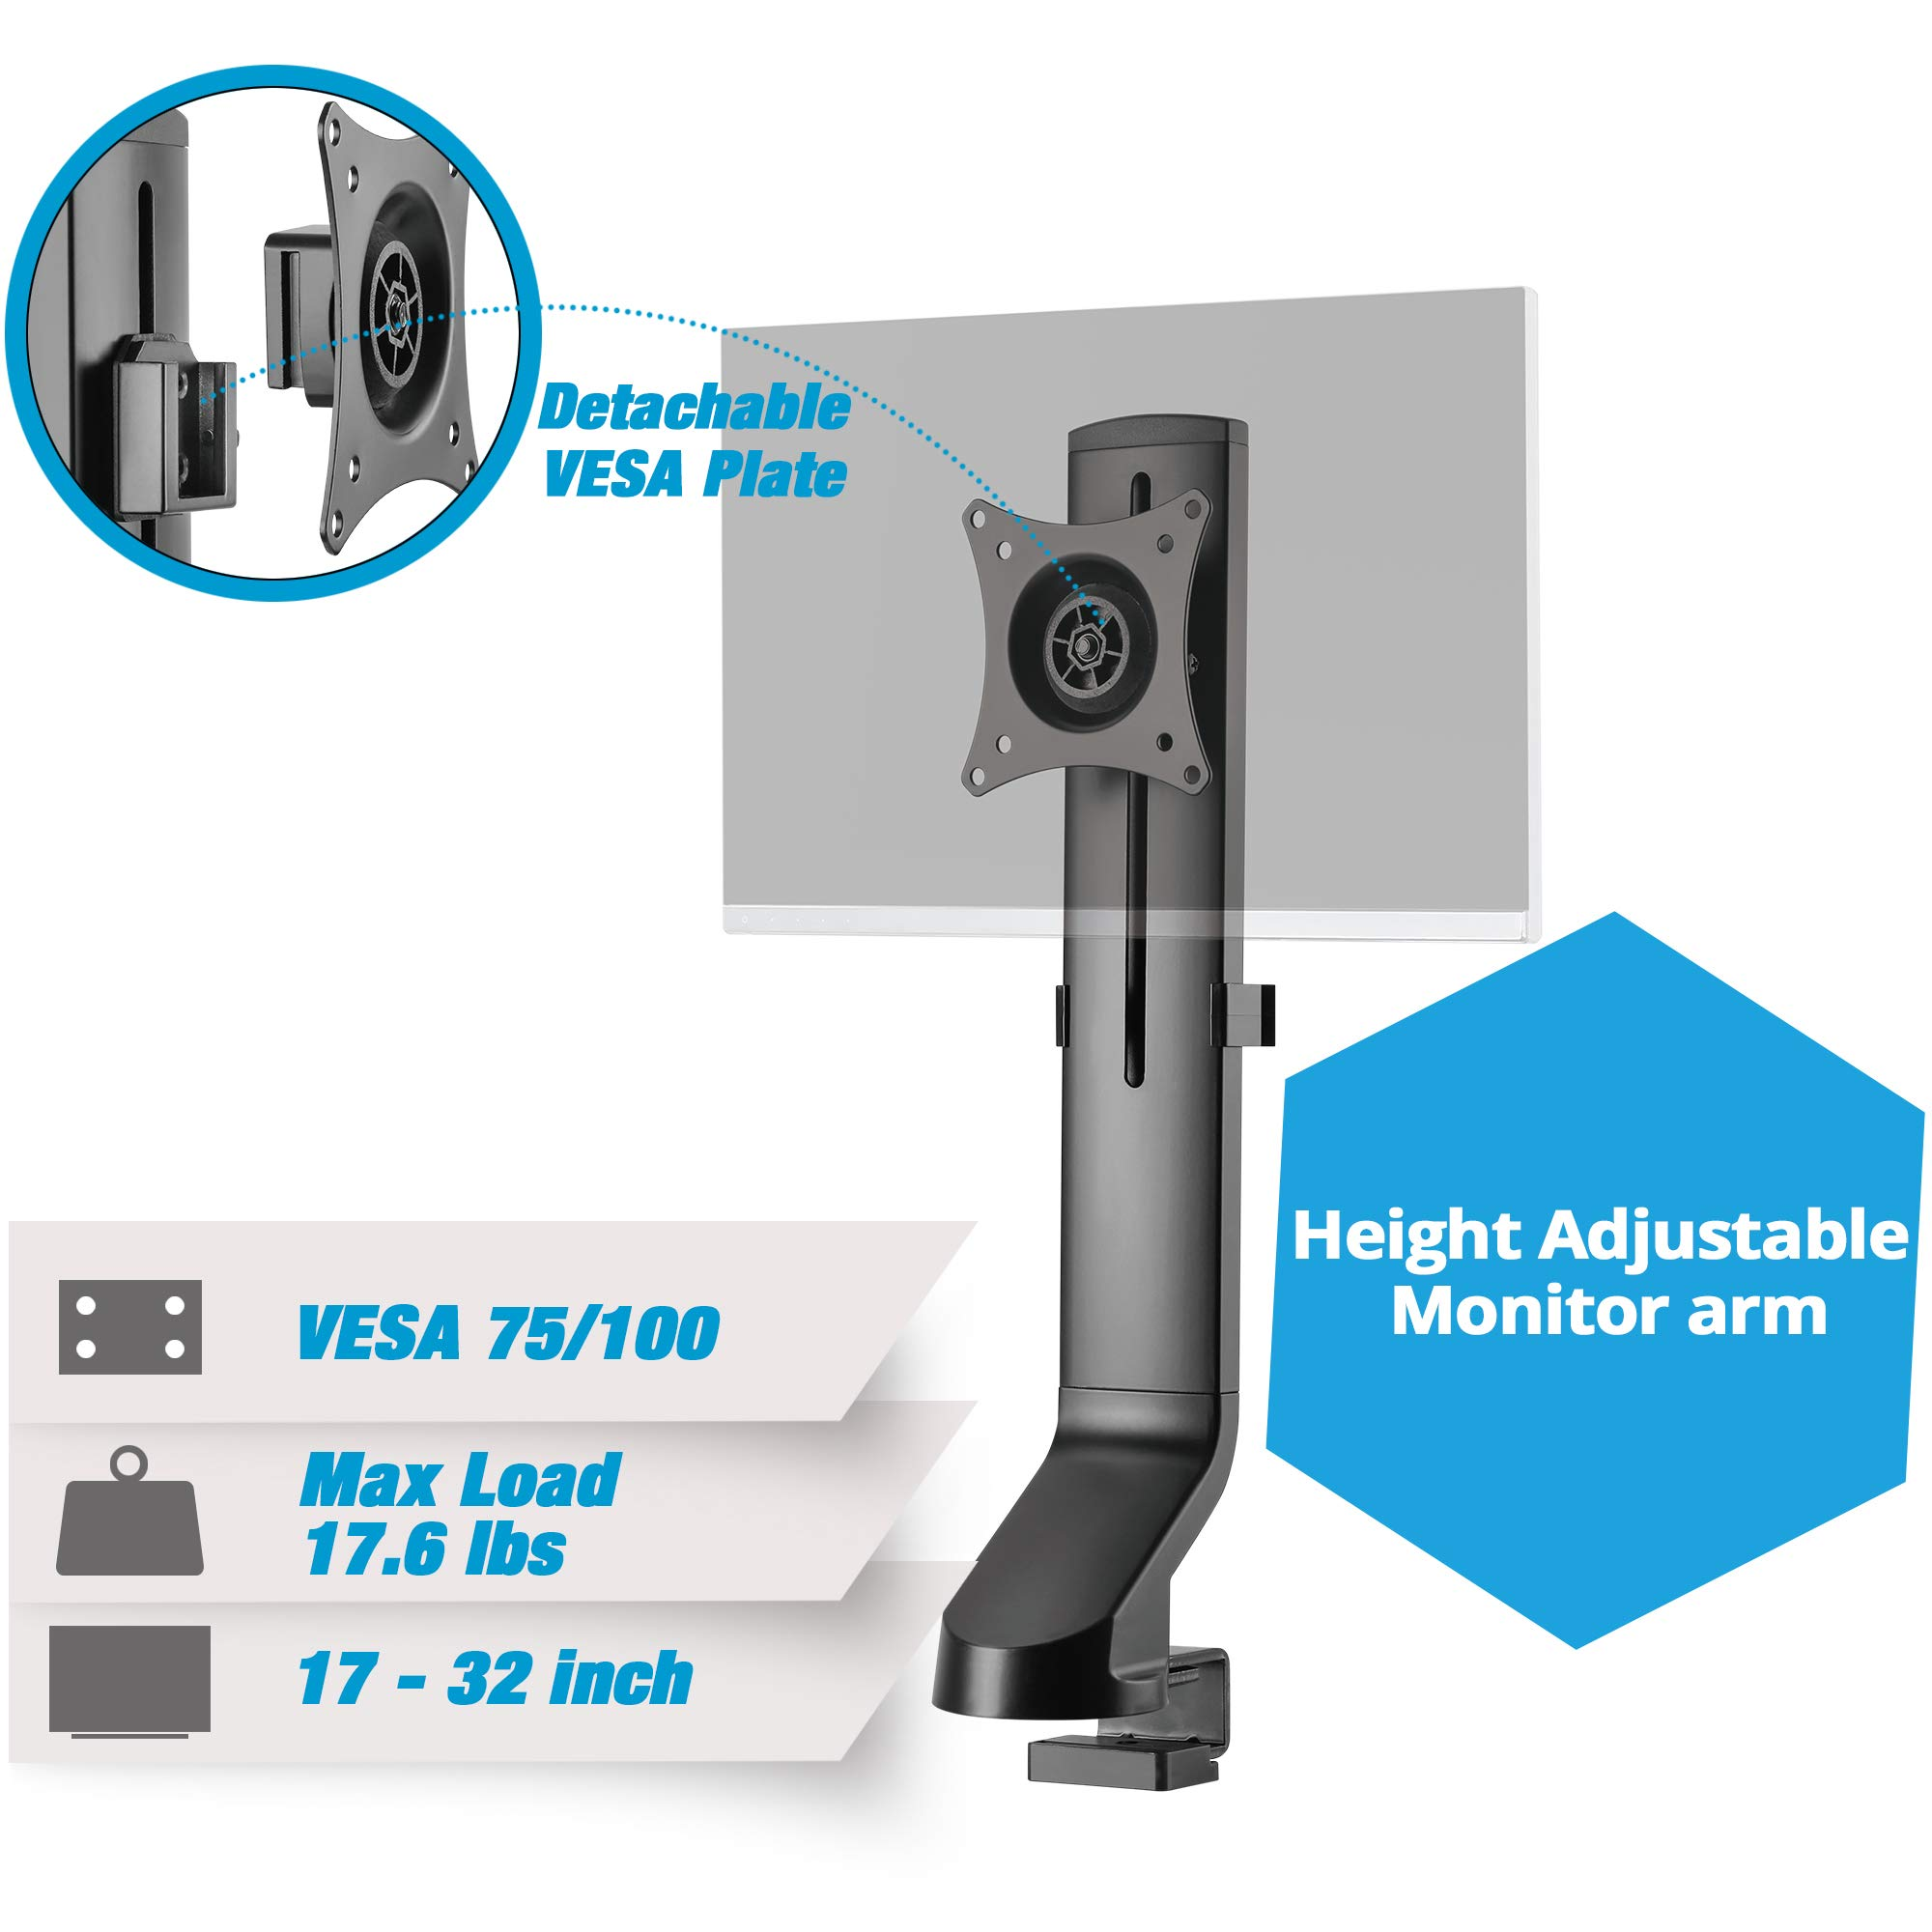 AVLT-Power Single Monitor Mount for Standing Desk Workstation - Extra Height Adjustment Range - Heavy Duty - Holds 17'' to 32'' Screens, up to 17.6 lbs, VESA 75x75mm 100x100mm